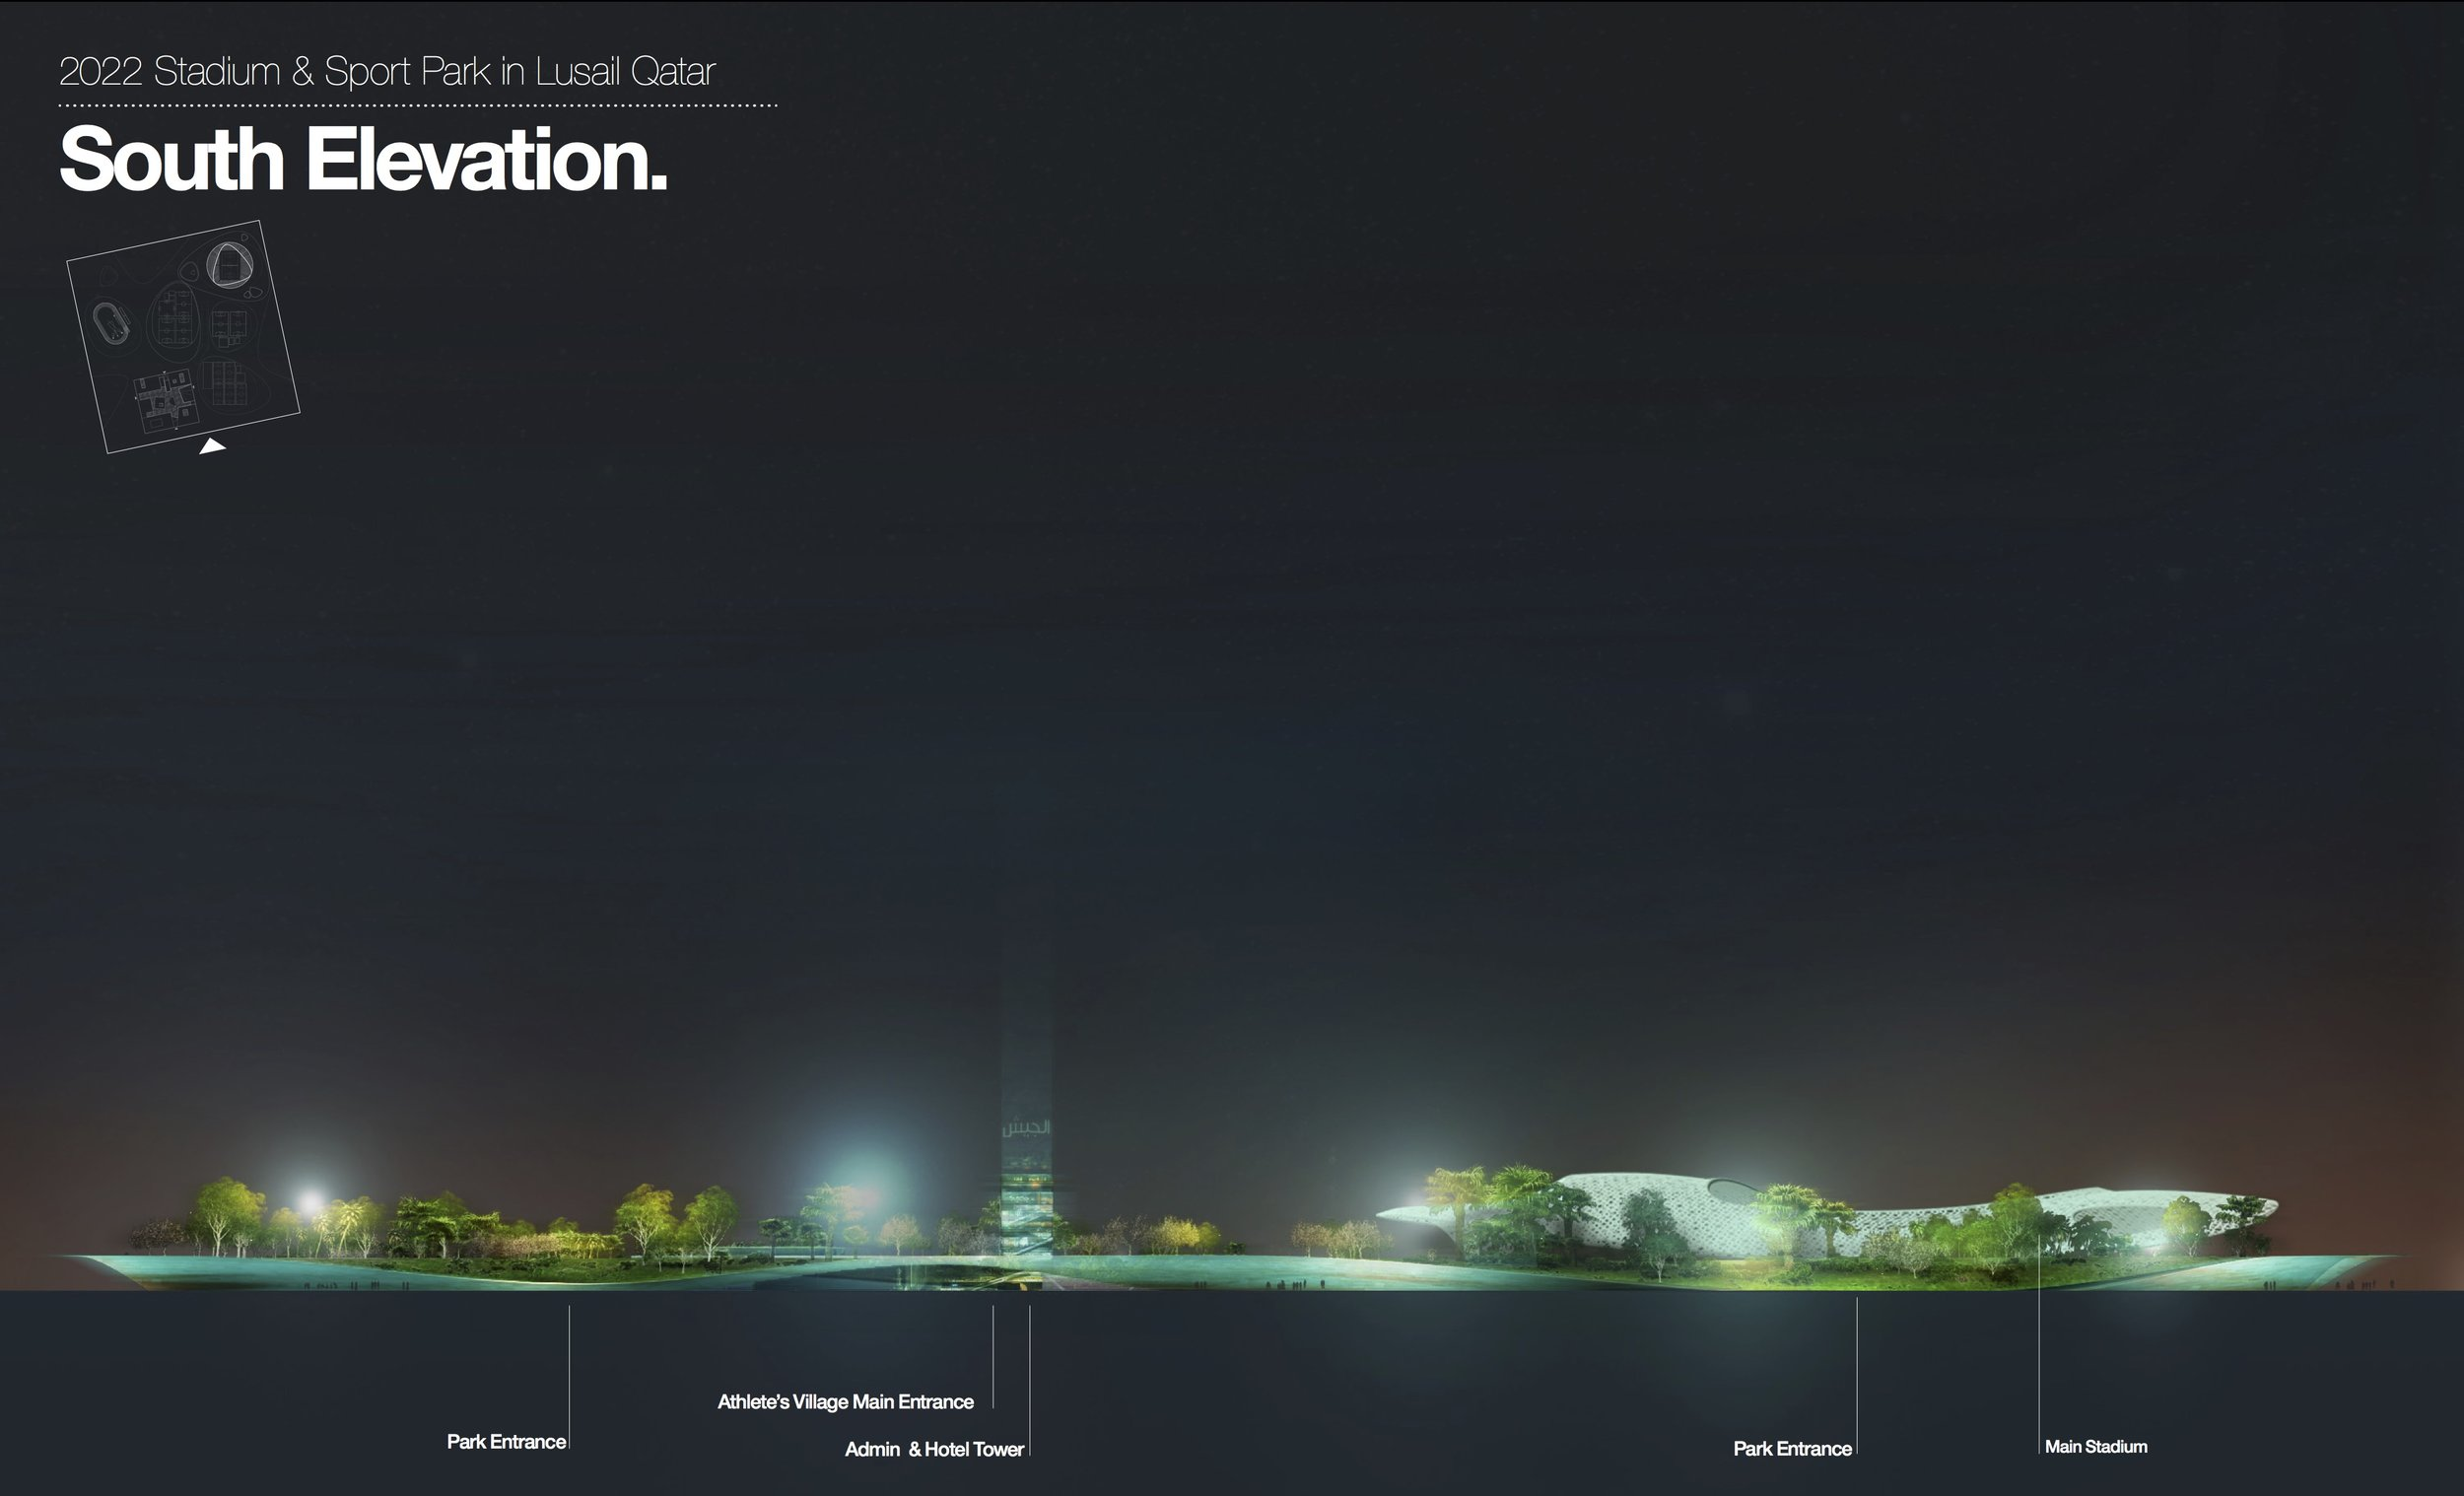 130730 Qatar_Main_Stadium_Concept_south elevation 19.jpg